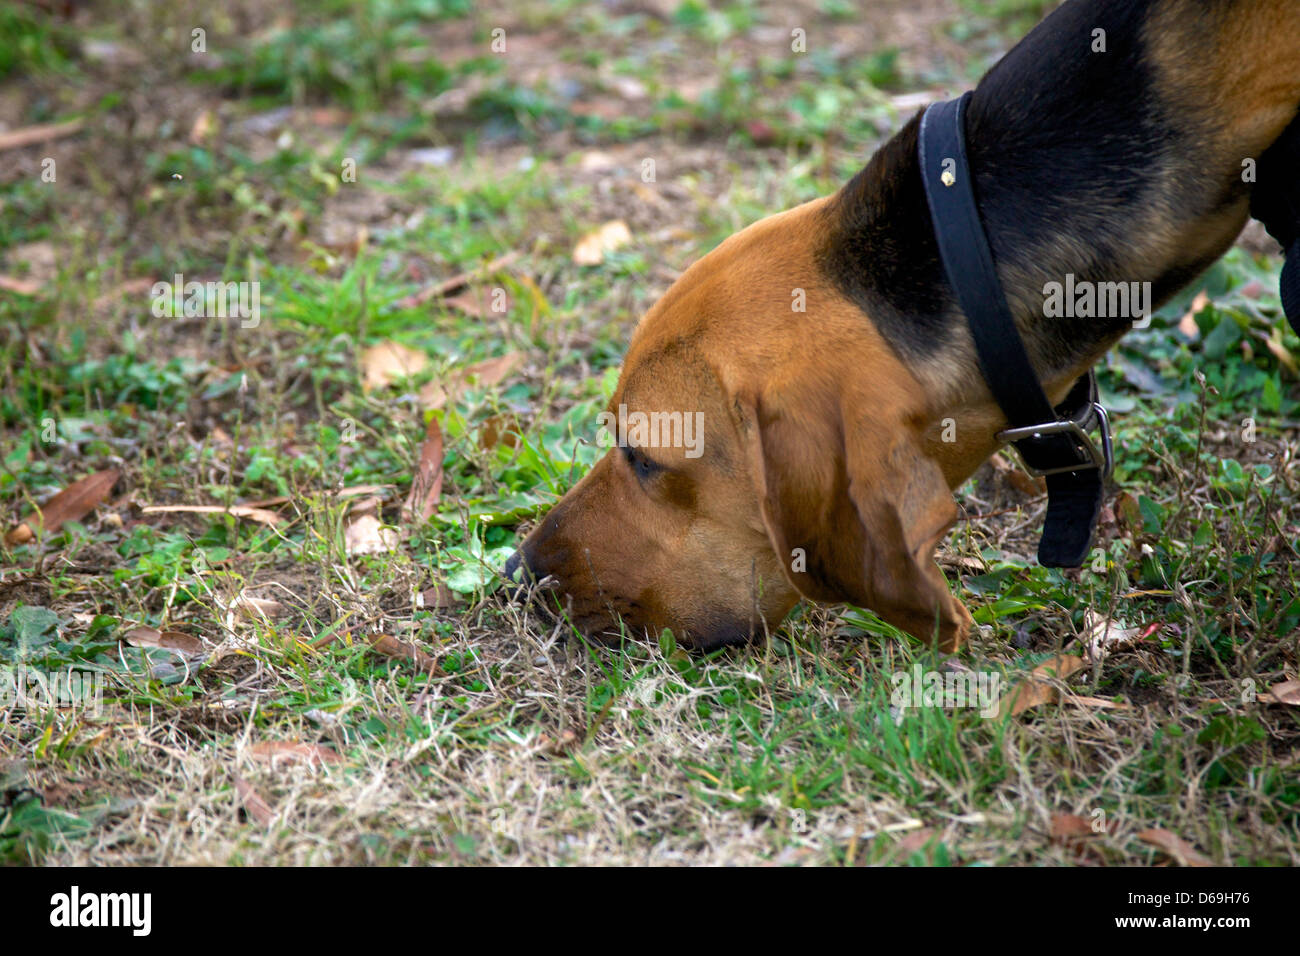 Police K9 dog, a bloodhound, tracking. - Stock Image